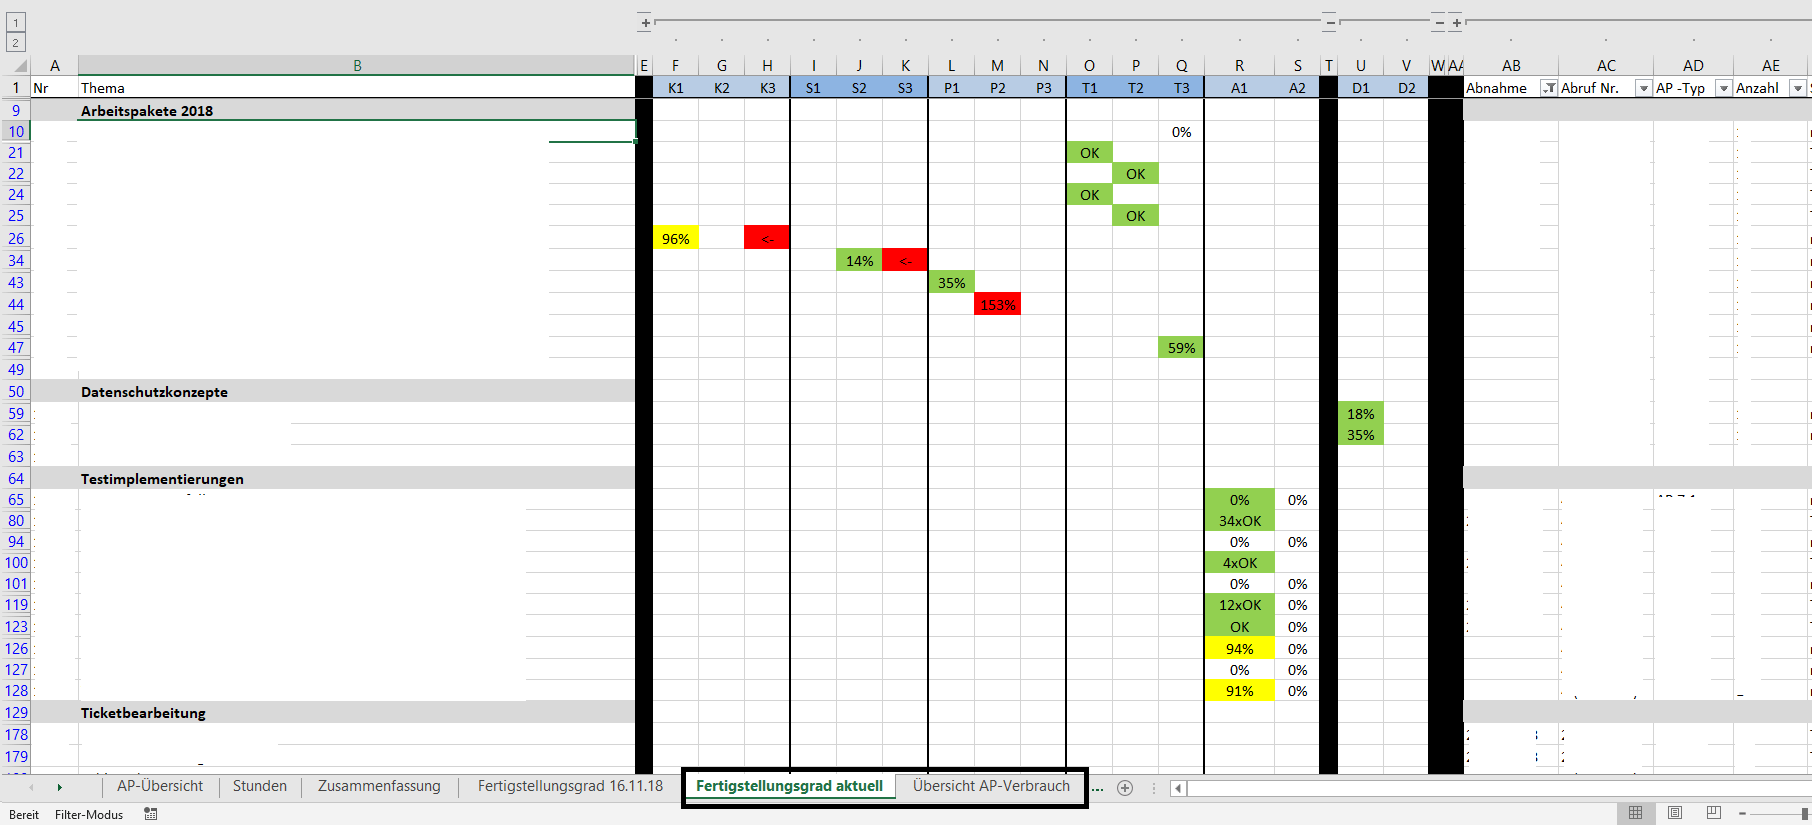 Making A New Copy With Only Values